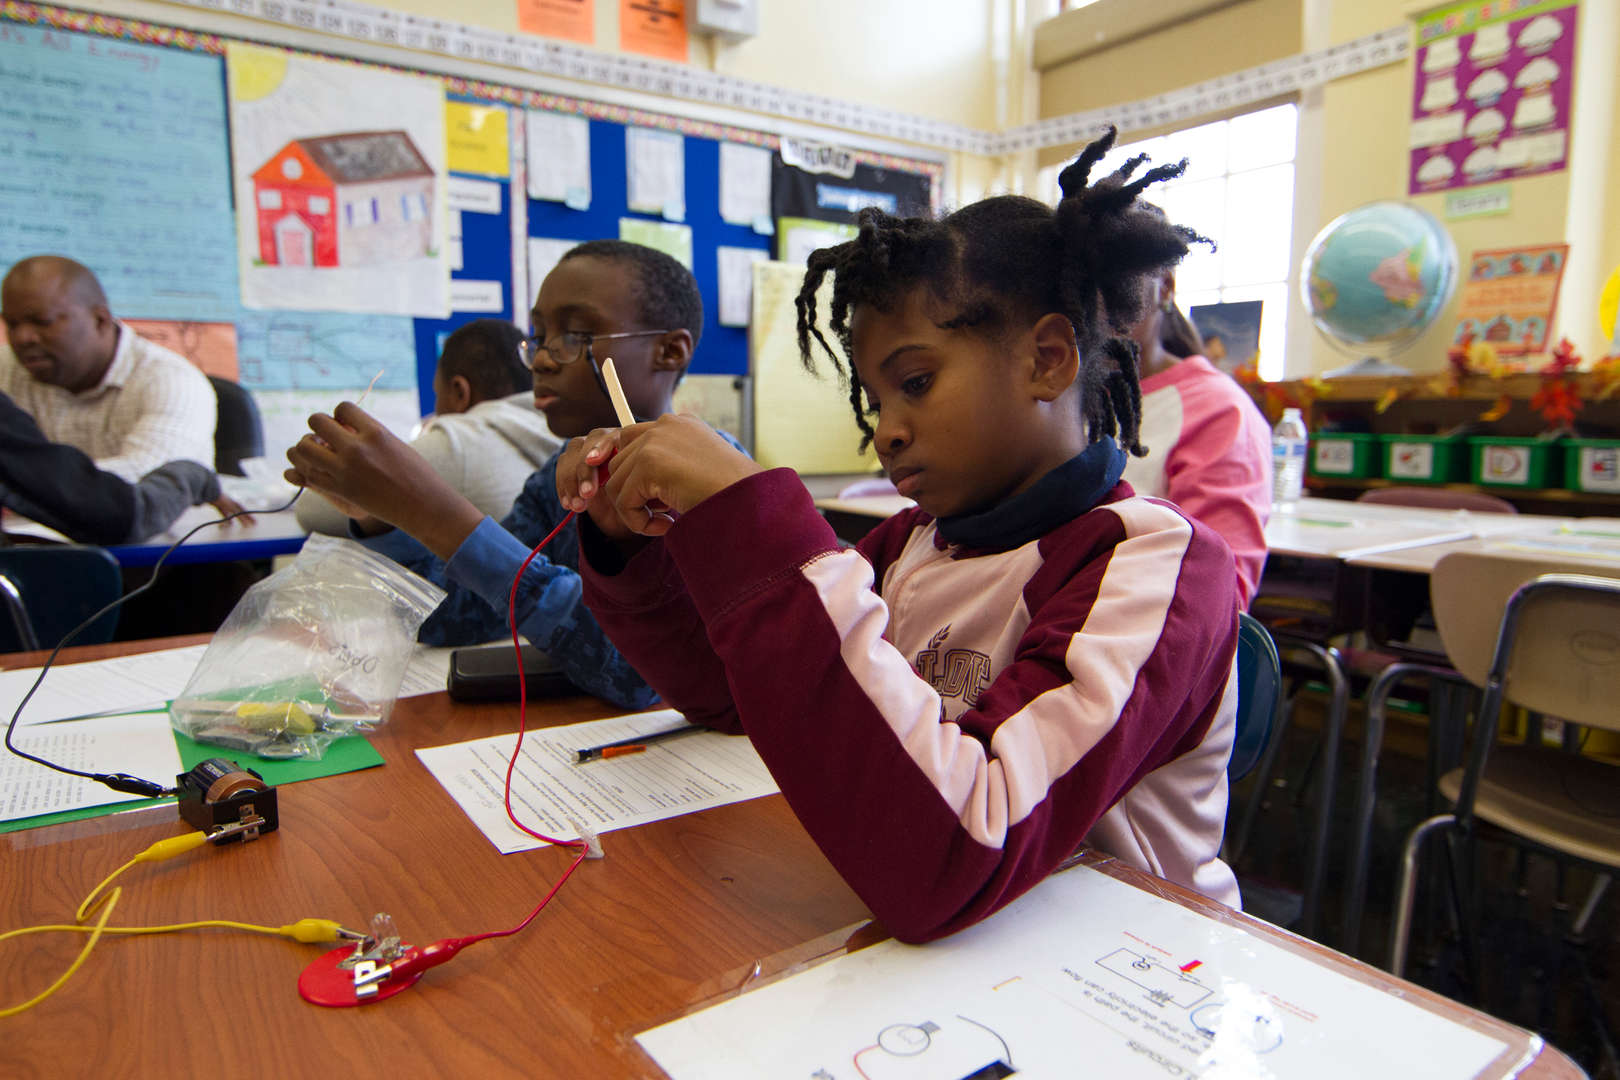 Students working on electrical project